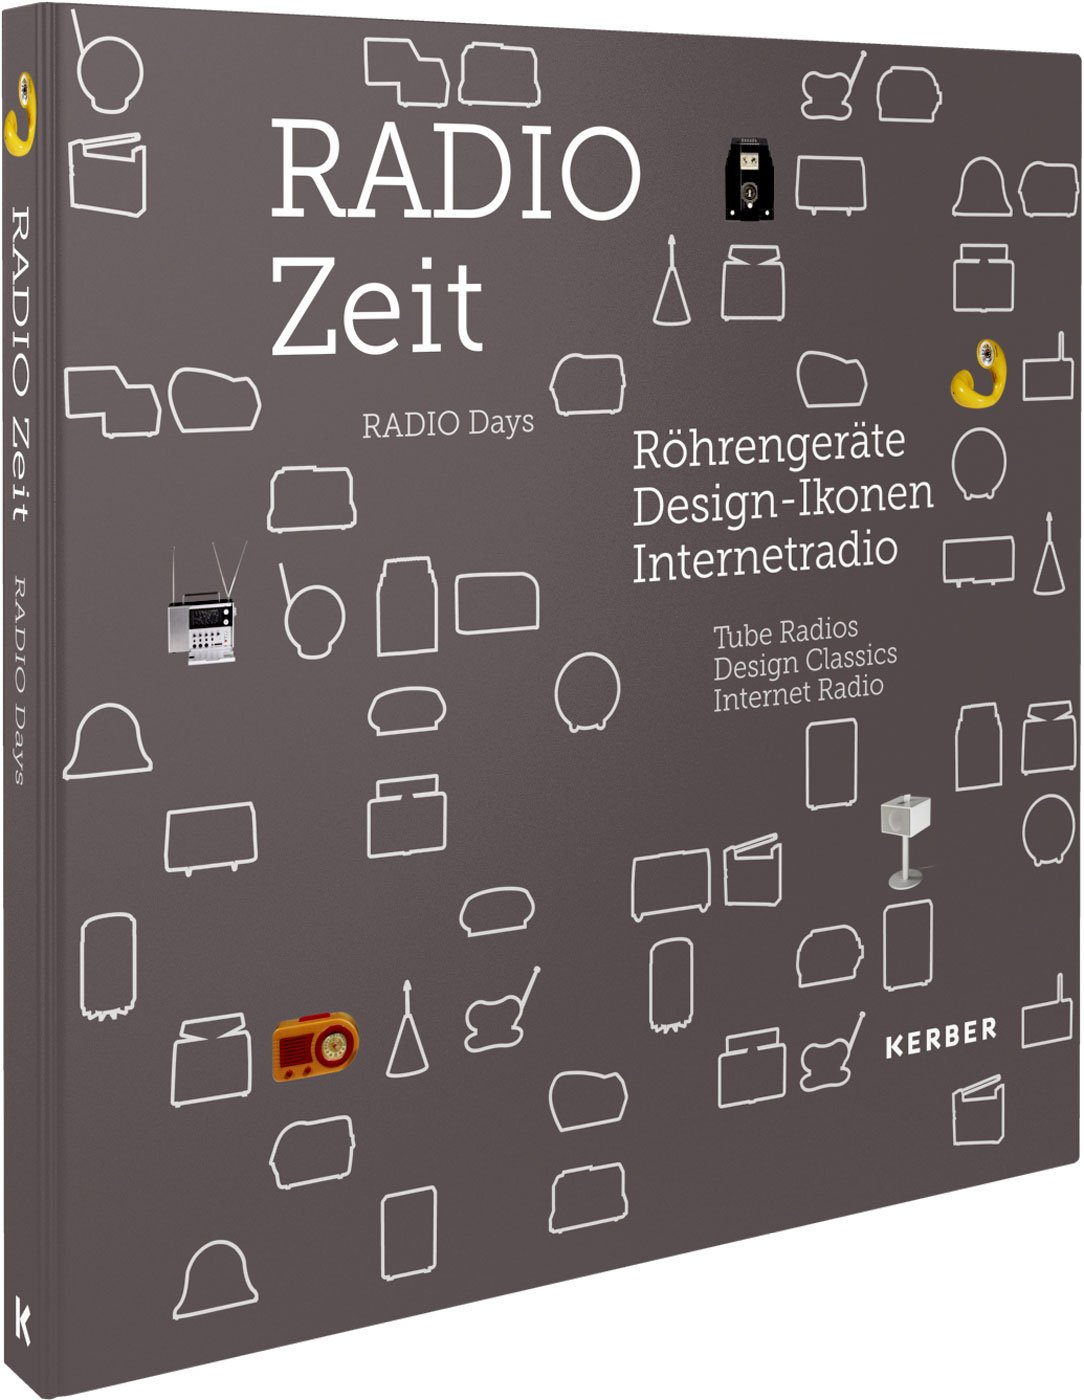 Radio Days: Tube Radios, Design Classics, Internet Radio (English and German Edition)